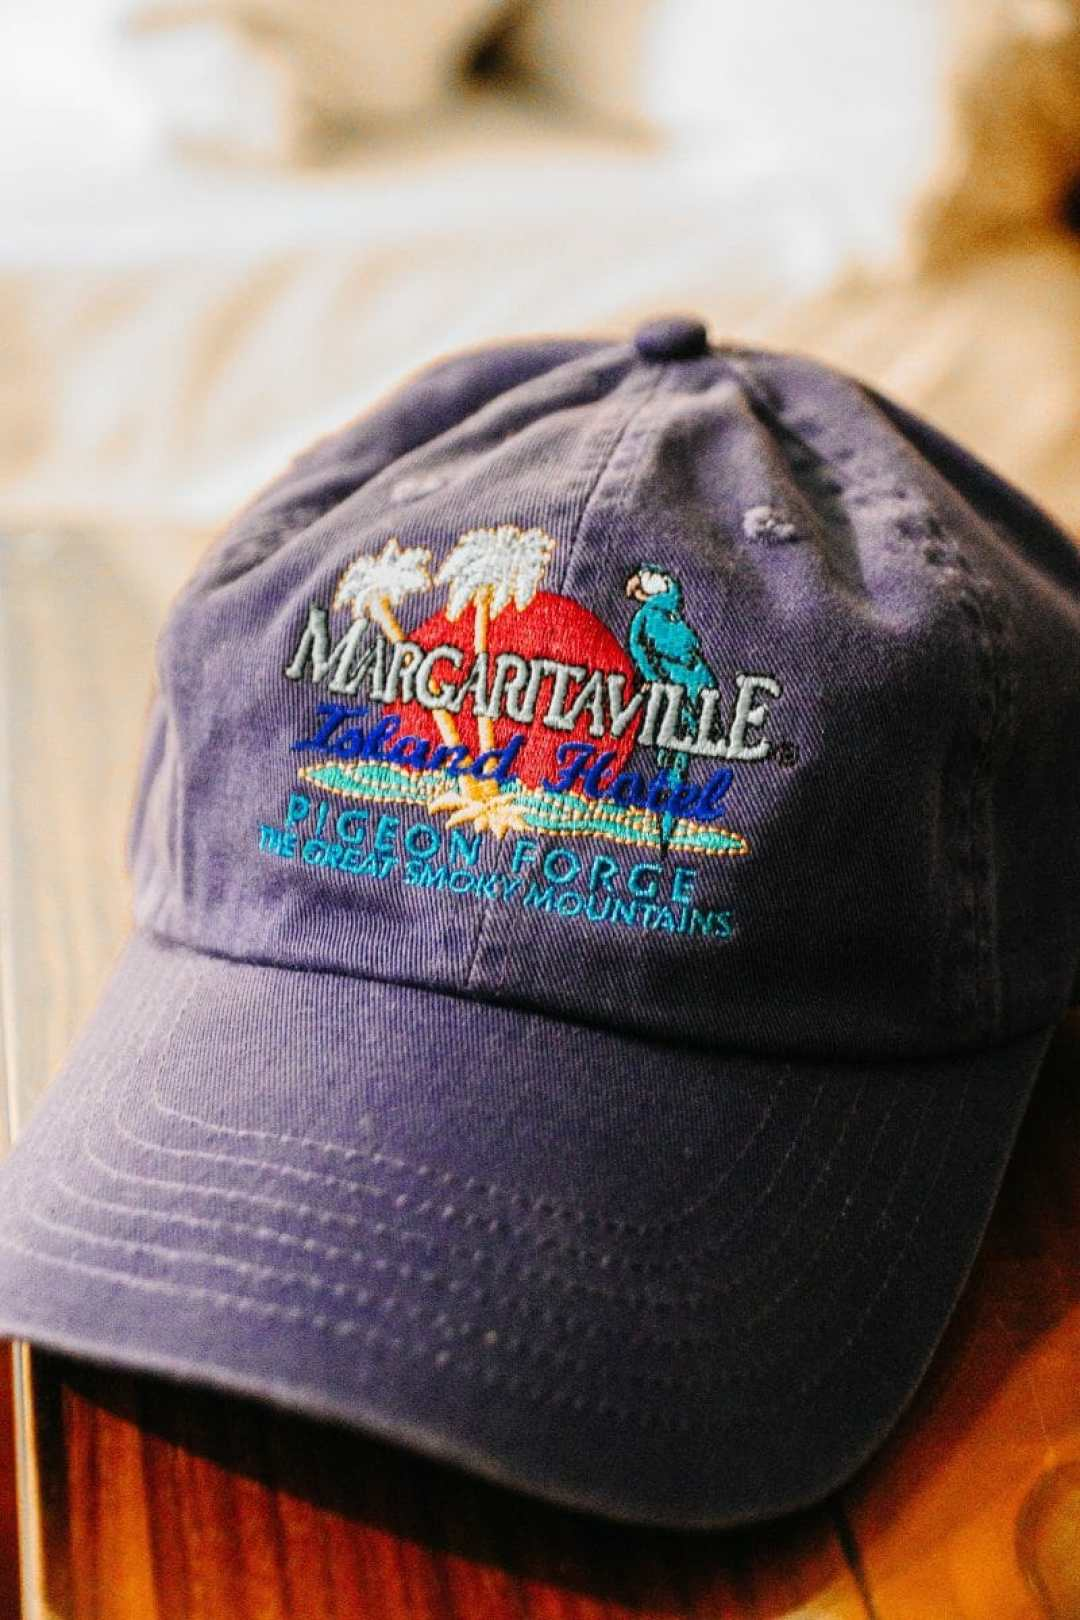 Staying at the Margaritaville Island Hotel in Pigeon Forge on the Island: Things to do, eat, and where to stay on the Island In Pigeon Forge, TN by JC Phelps of JCP Eats, A Ketnucky-Based Food, Travel, and Lifestyle Blog